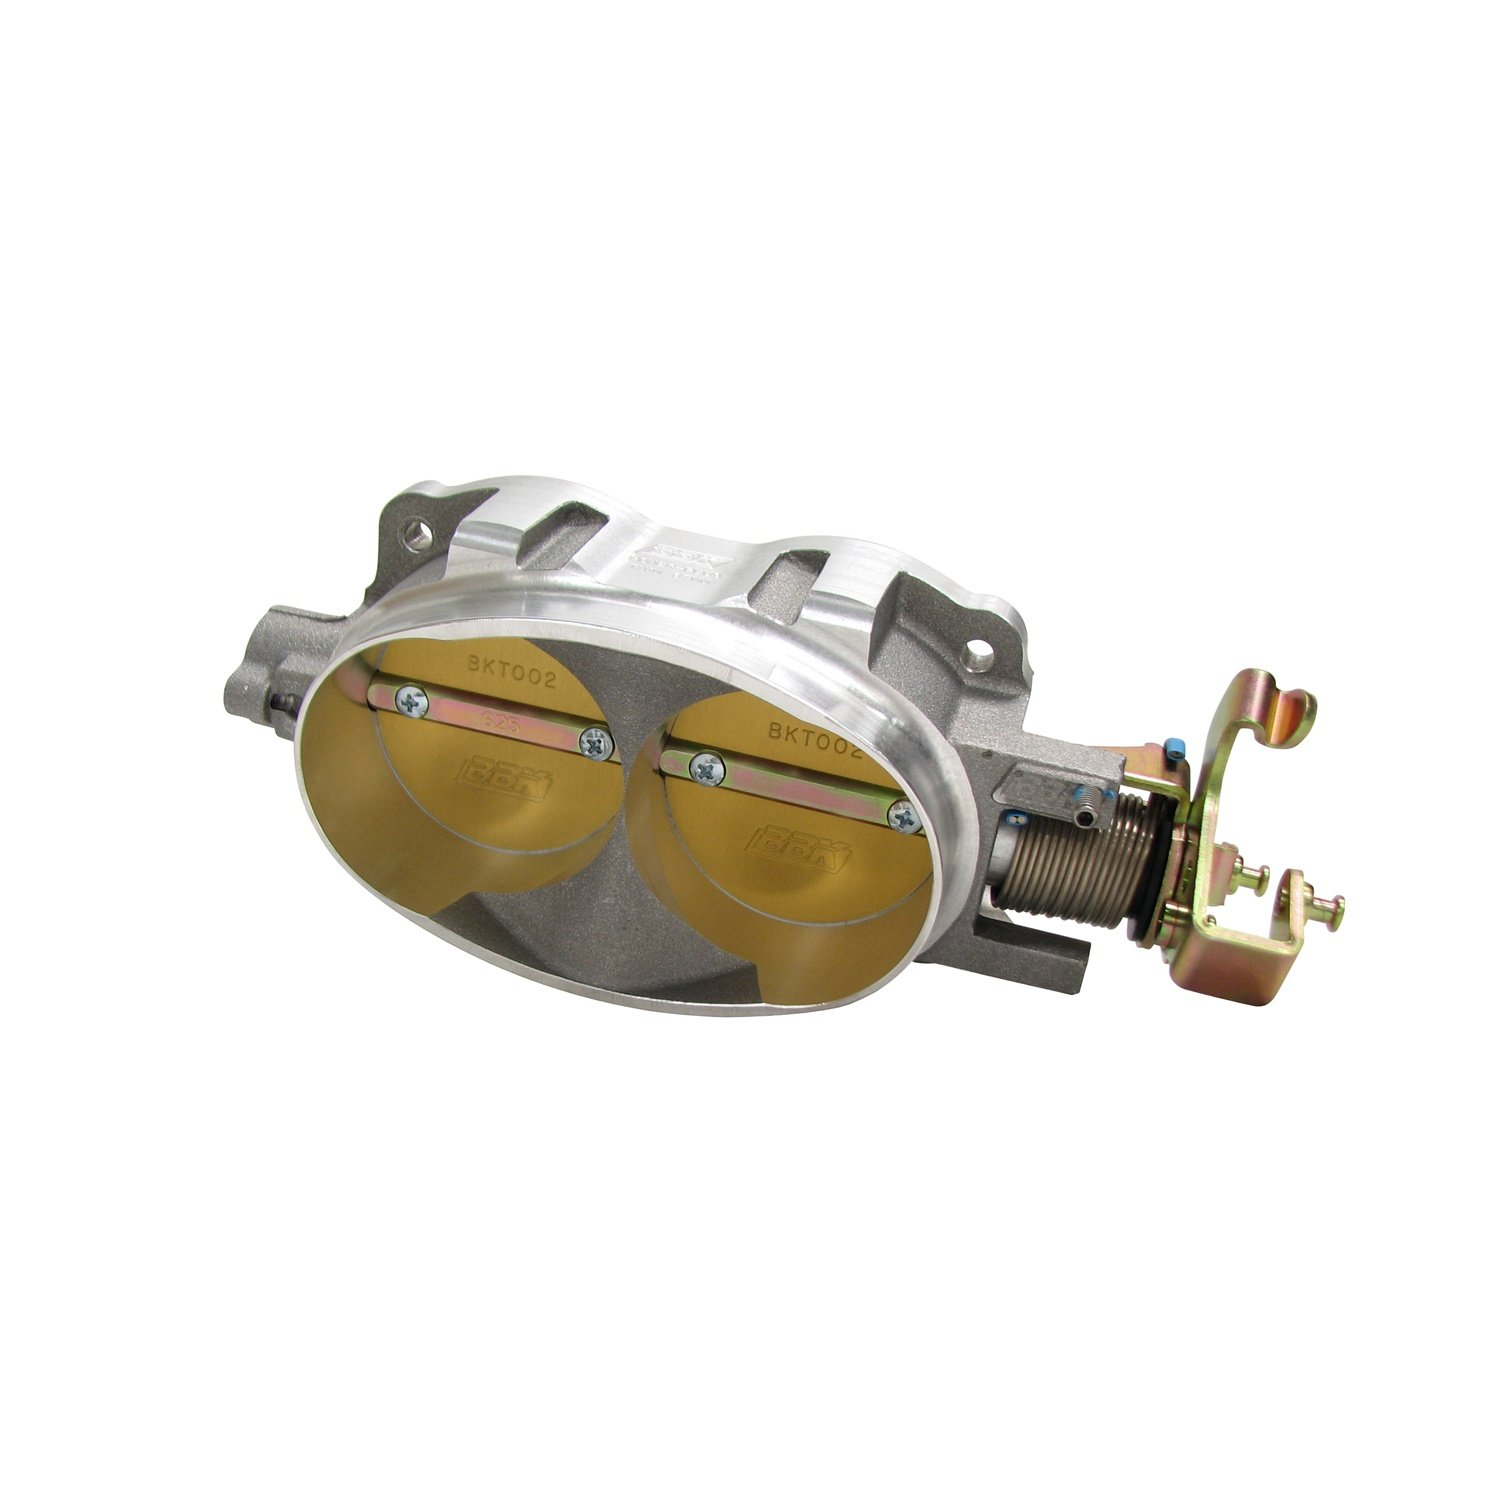 BBK 1767 67mm Throttle Body for Dodge Viper велосипед focus super bud 26r 2 0 2014